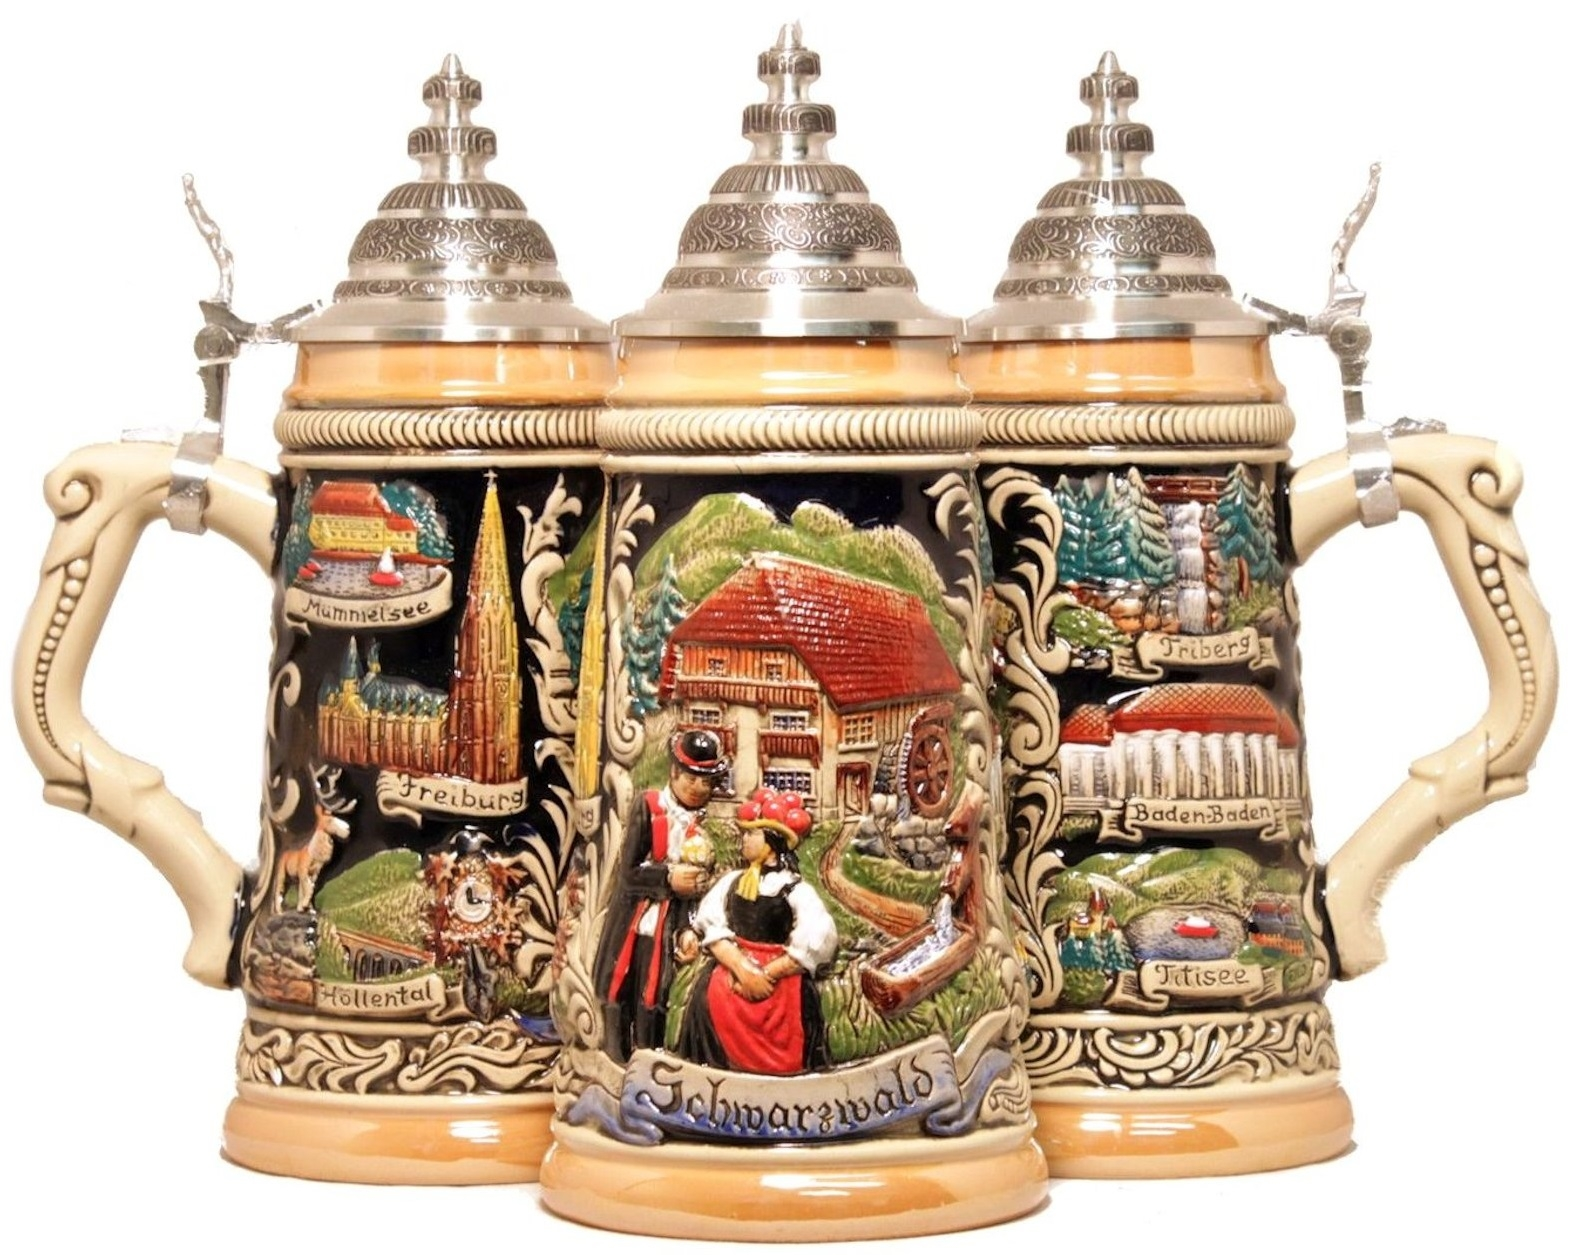 Le German Beer Stein Black Forest Schwarzwald Authentic Beer Steins From Germany